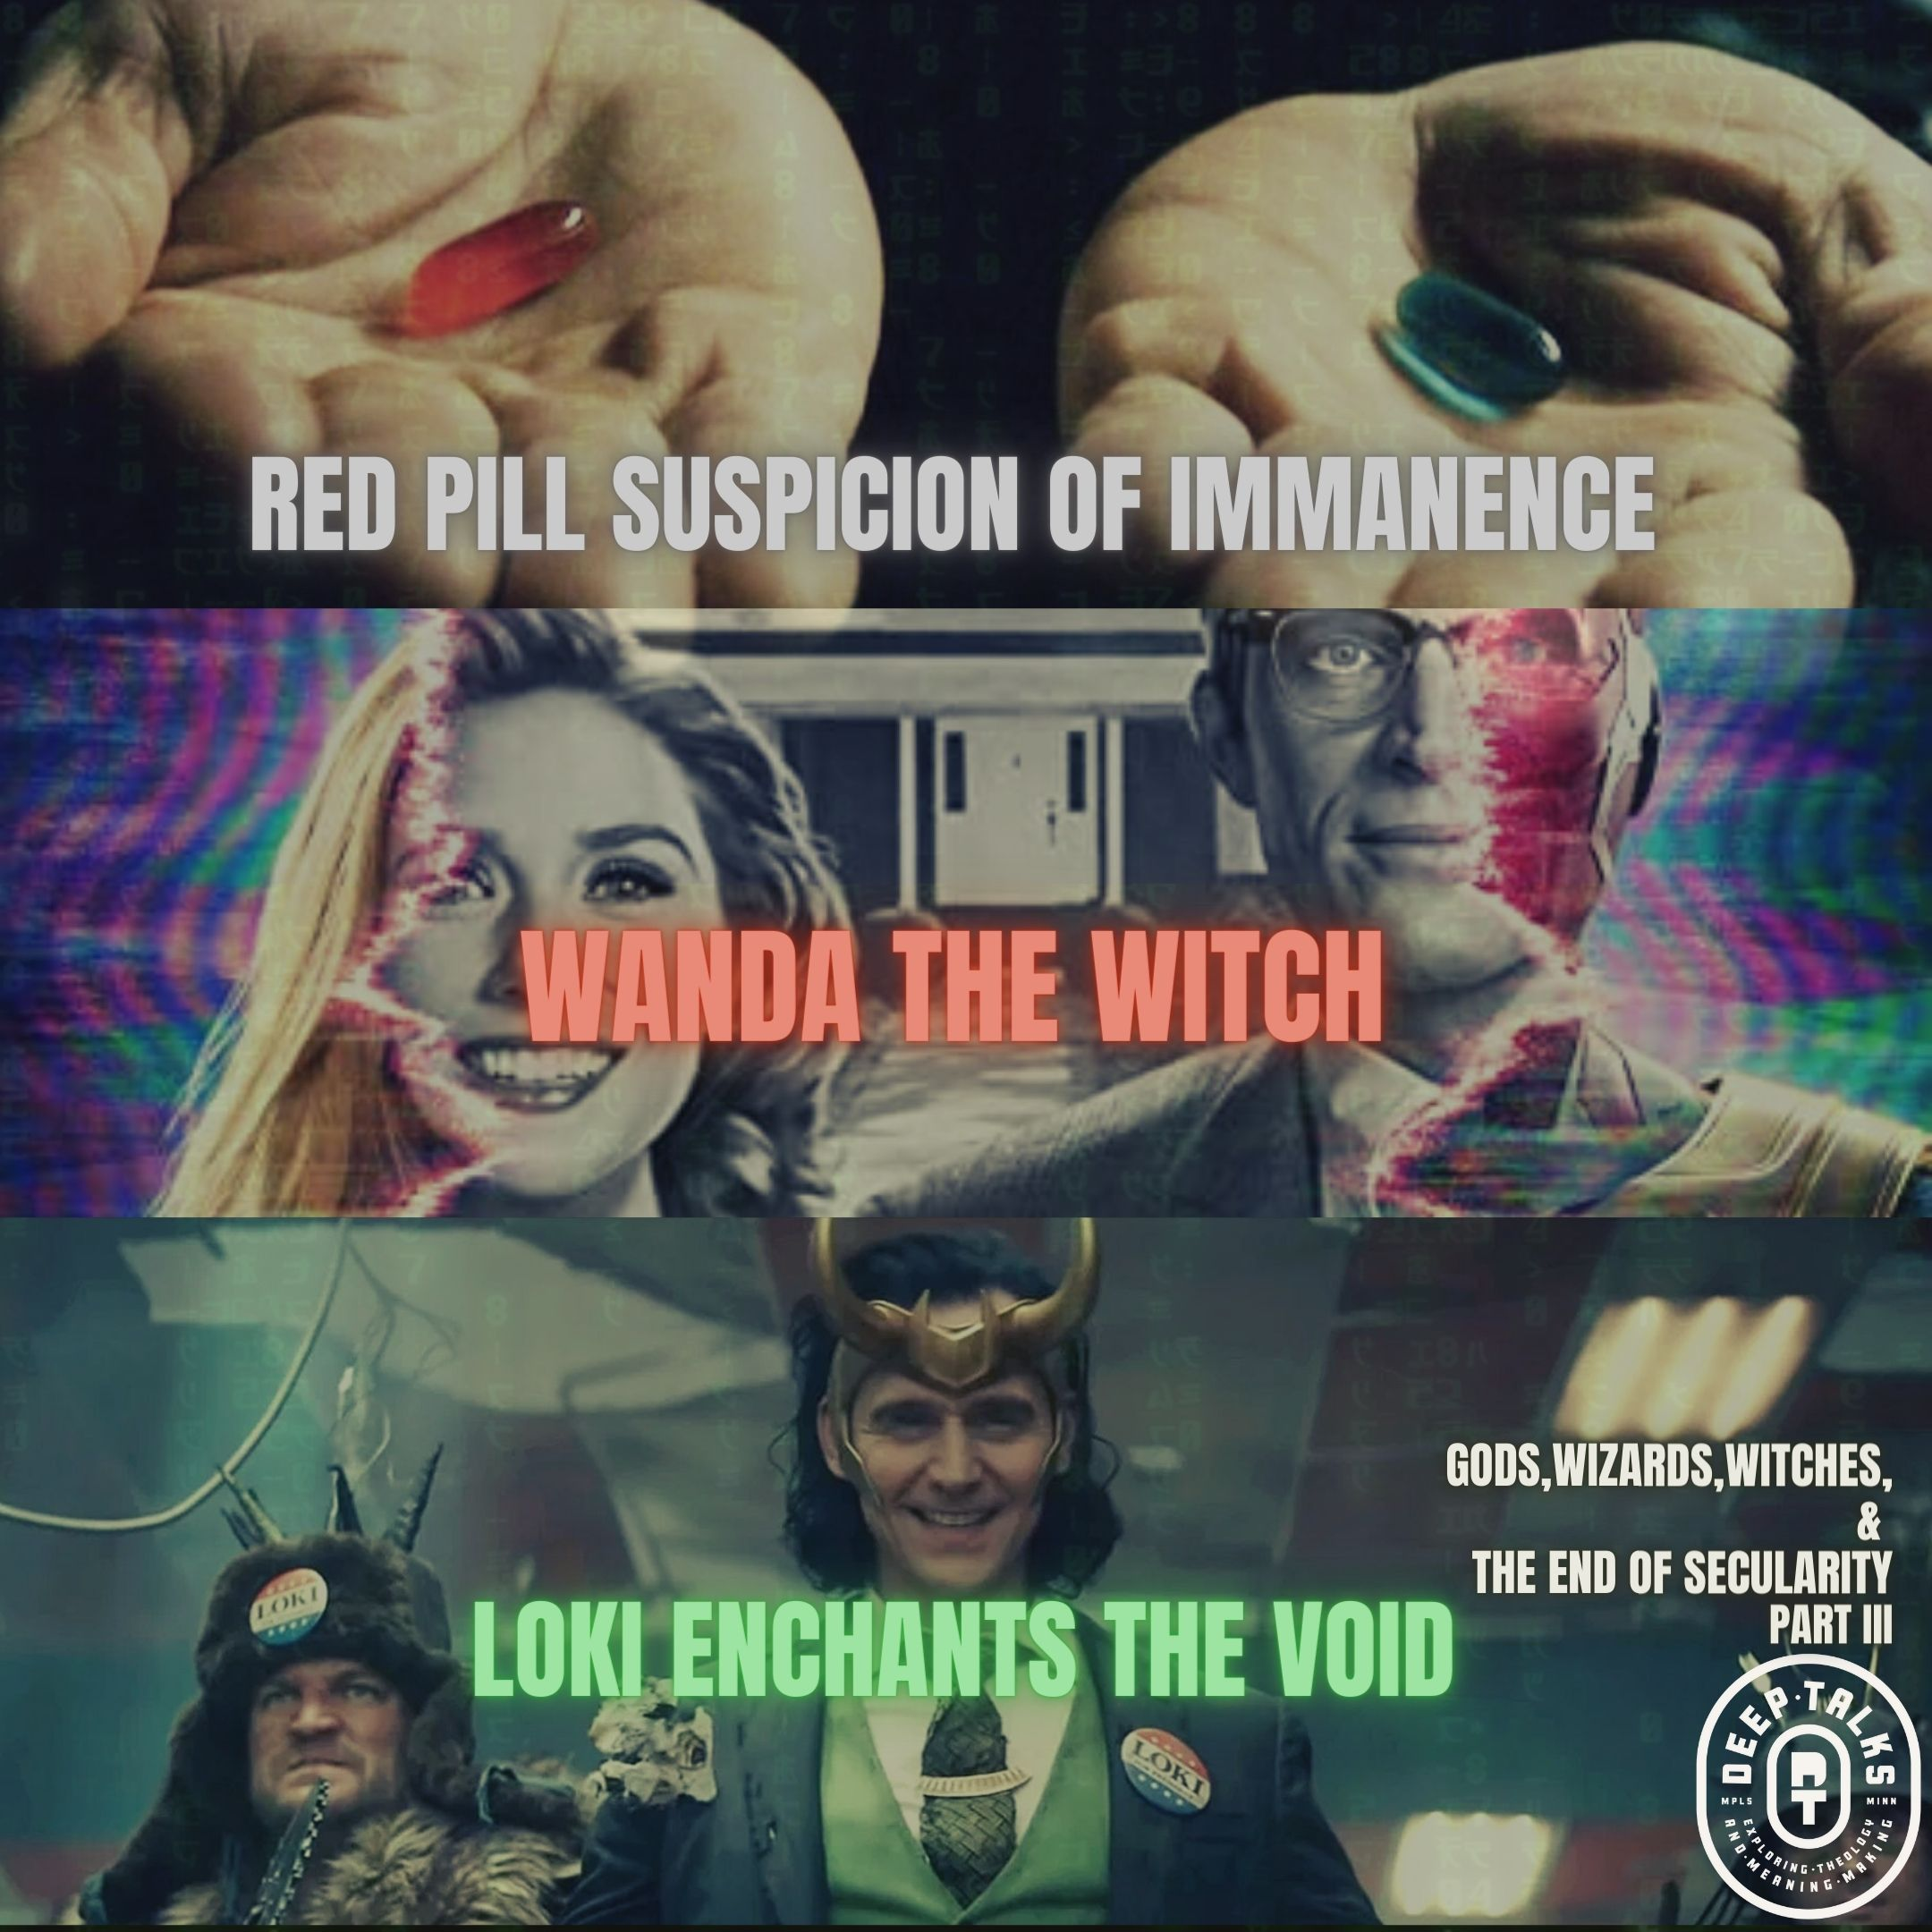 Ep 102: Gods, Wizards, Witches & The End of Secularity III- Red Pill Suspicion of Immanence, Wanda the Witch, Loki Enchants the Void